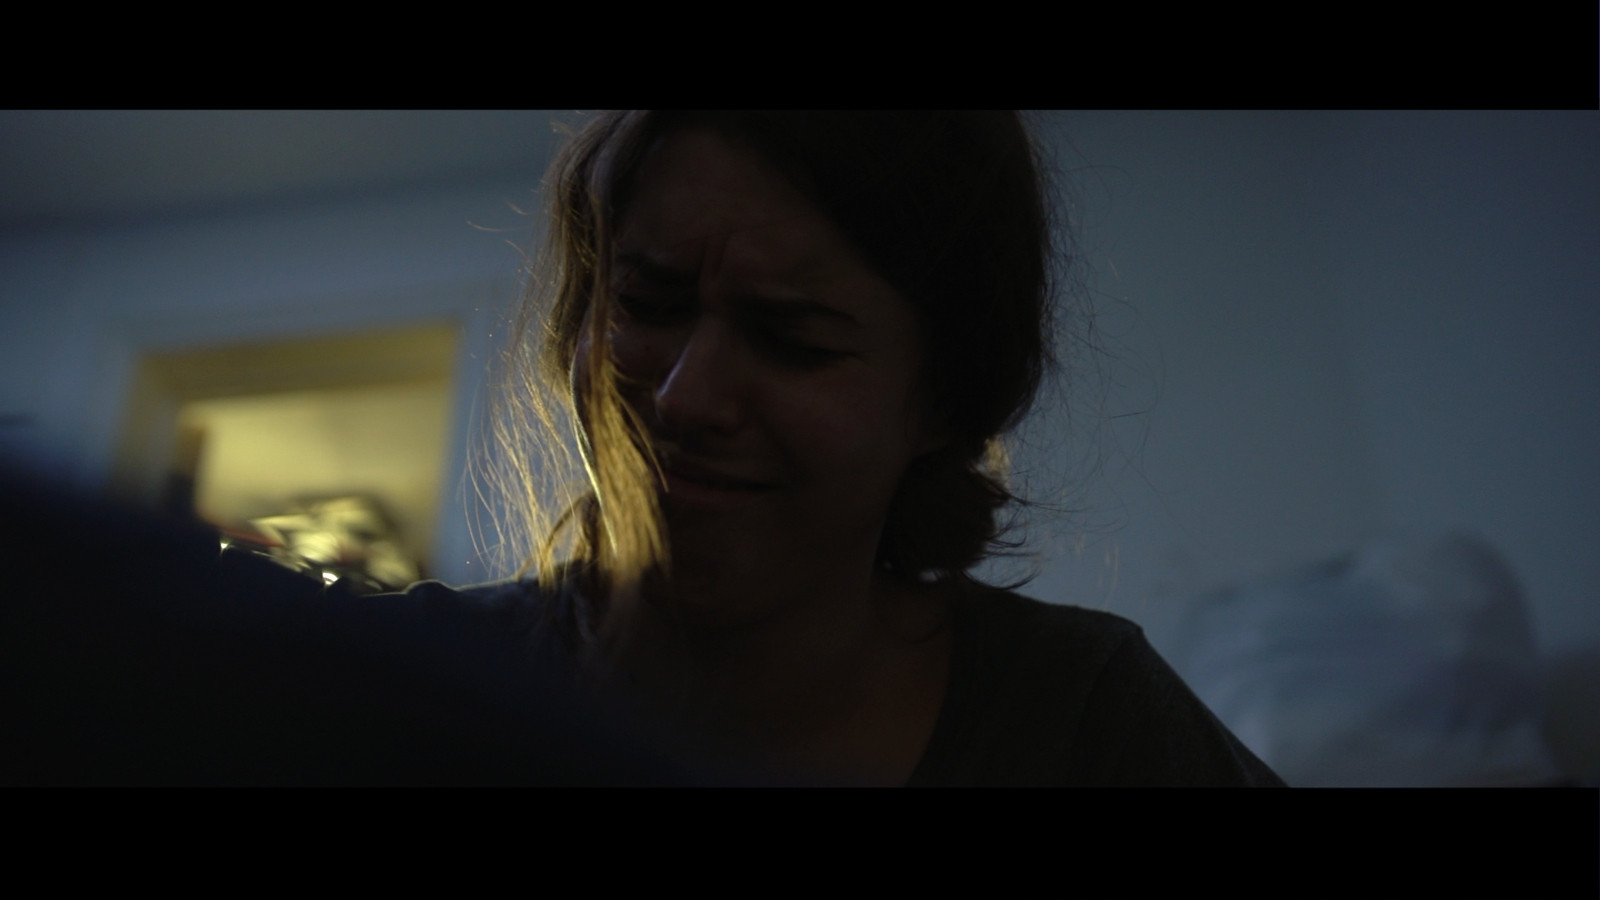 Still from Fresh Media Productions short film Trapped about domestic violence of actor Gaia Poli